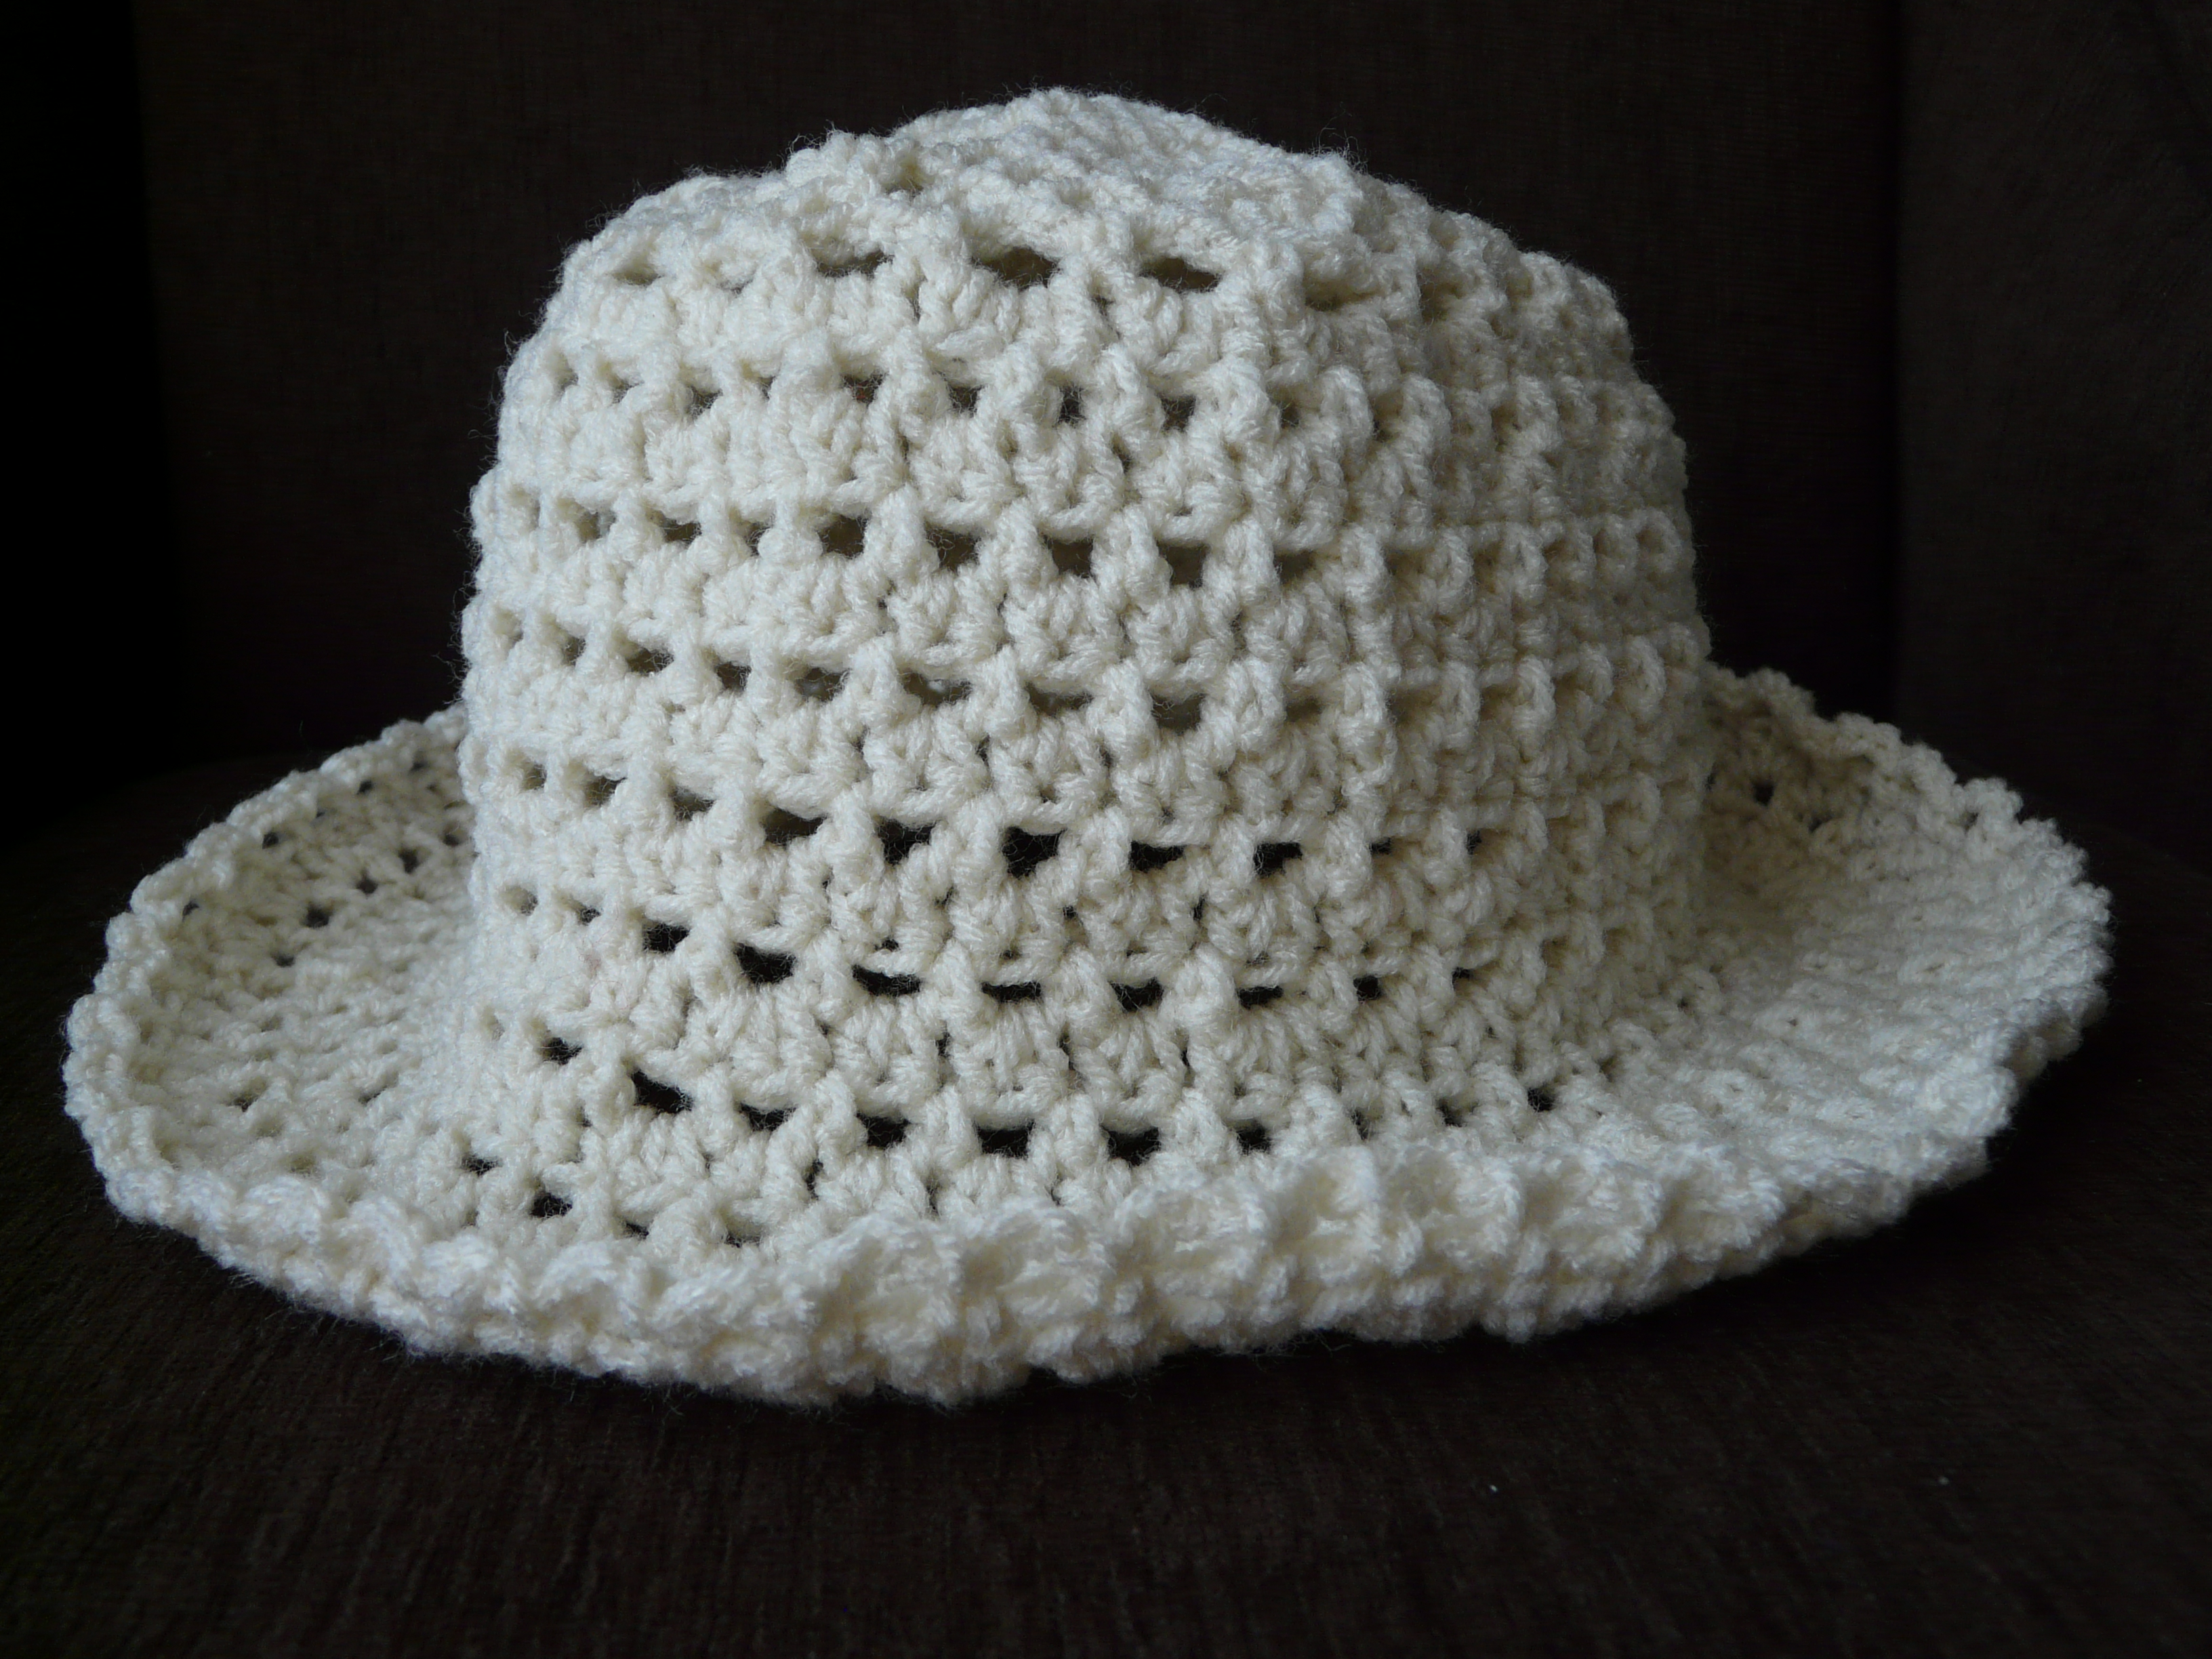 Free Crochet Patterns For Hats : Pics Photos - Crochet Pattern Central Free Hats Crochet Pattern Link ...